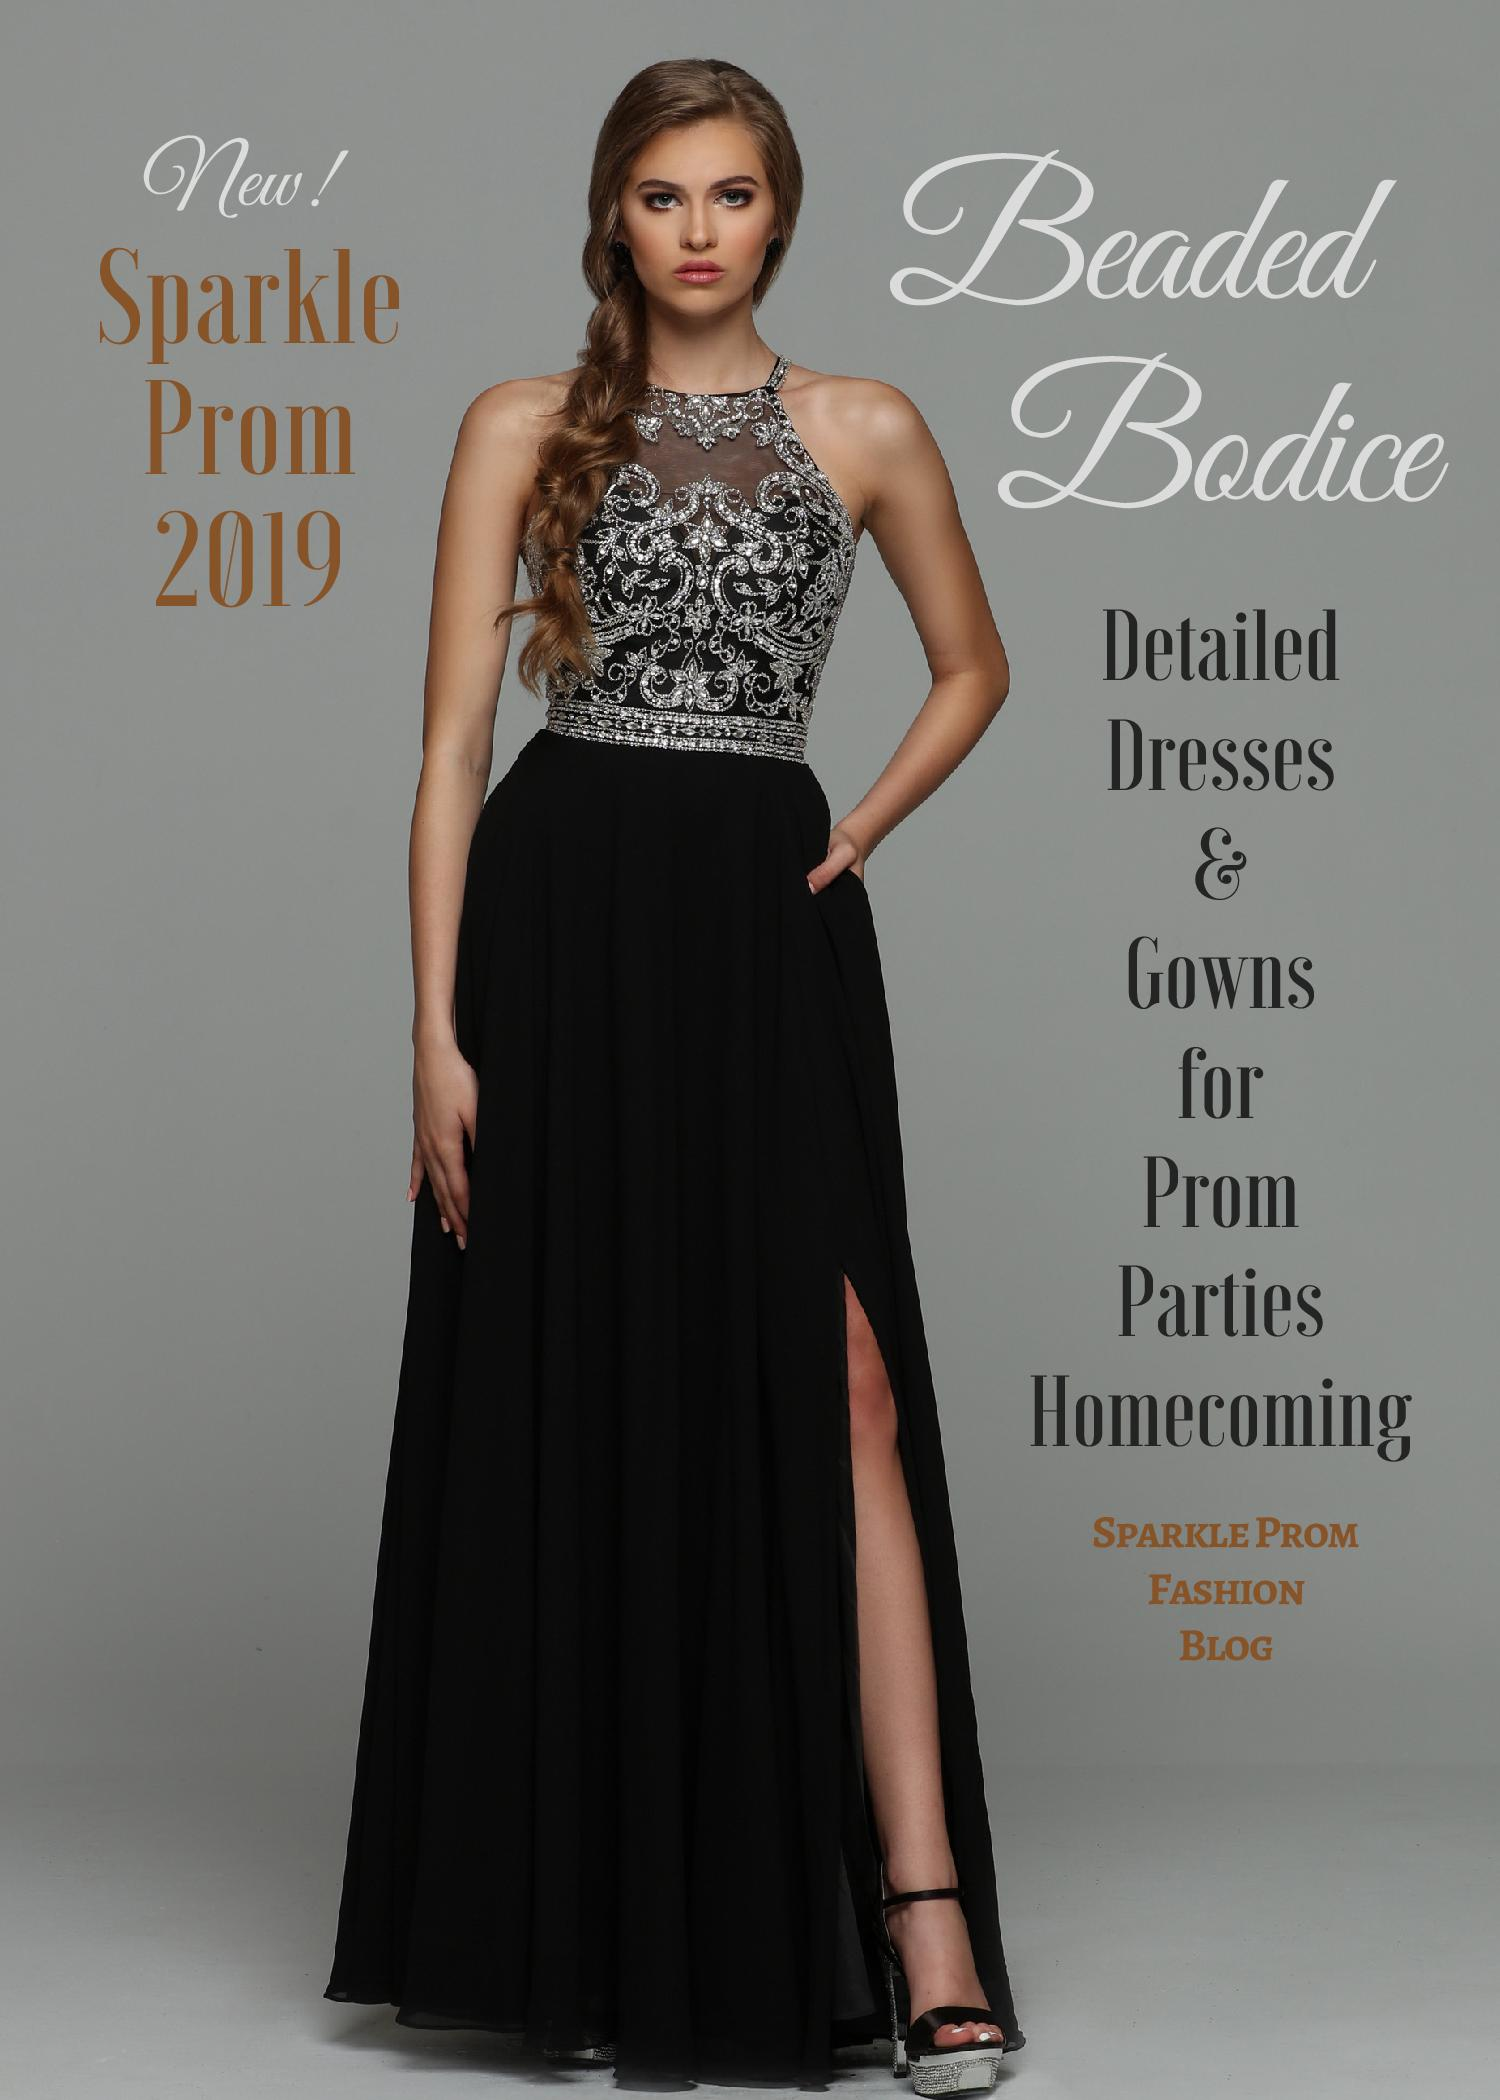 Sparkle Prom Night Beaded Bodice Dresses for 2019 – Sparkle Prom Fashion Blog